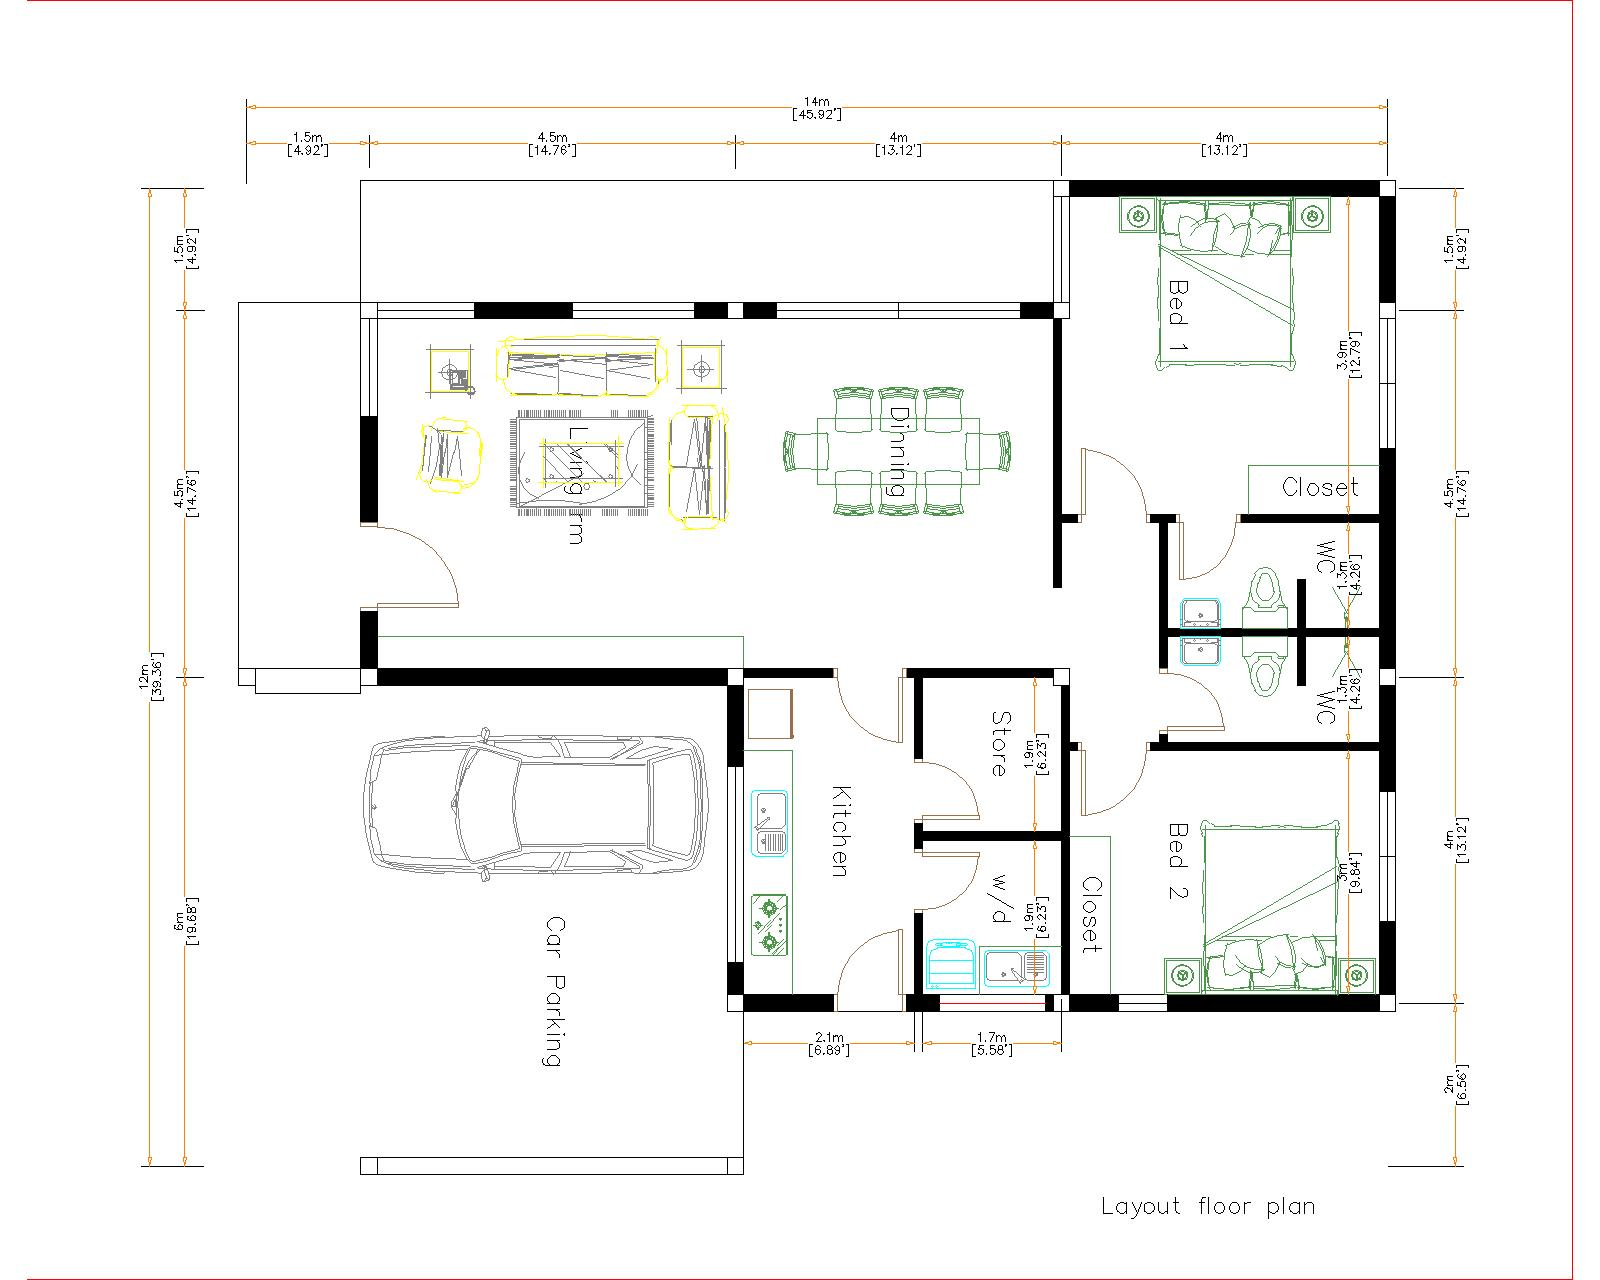 New House Design 12x14 Meter 40x46 Feet 2 Beds House Layout floor plan